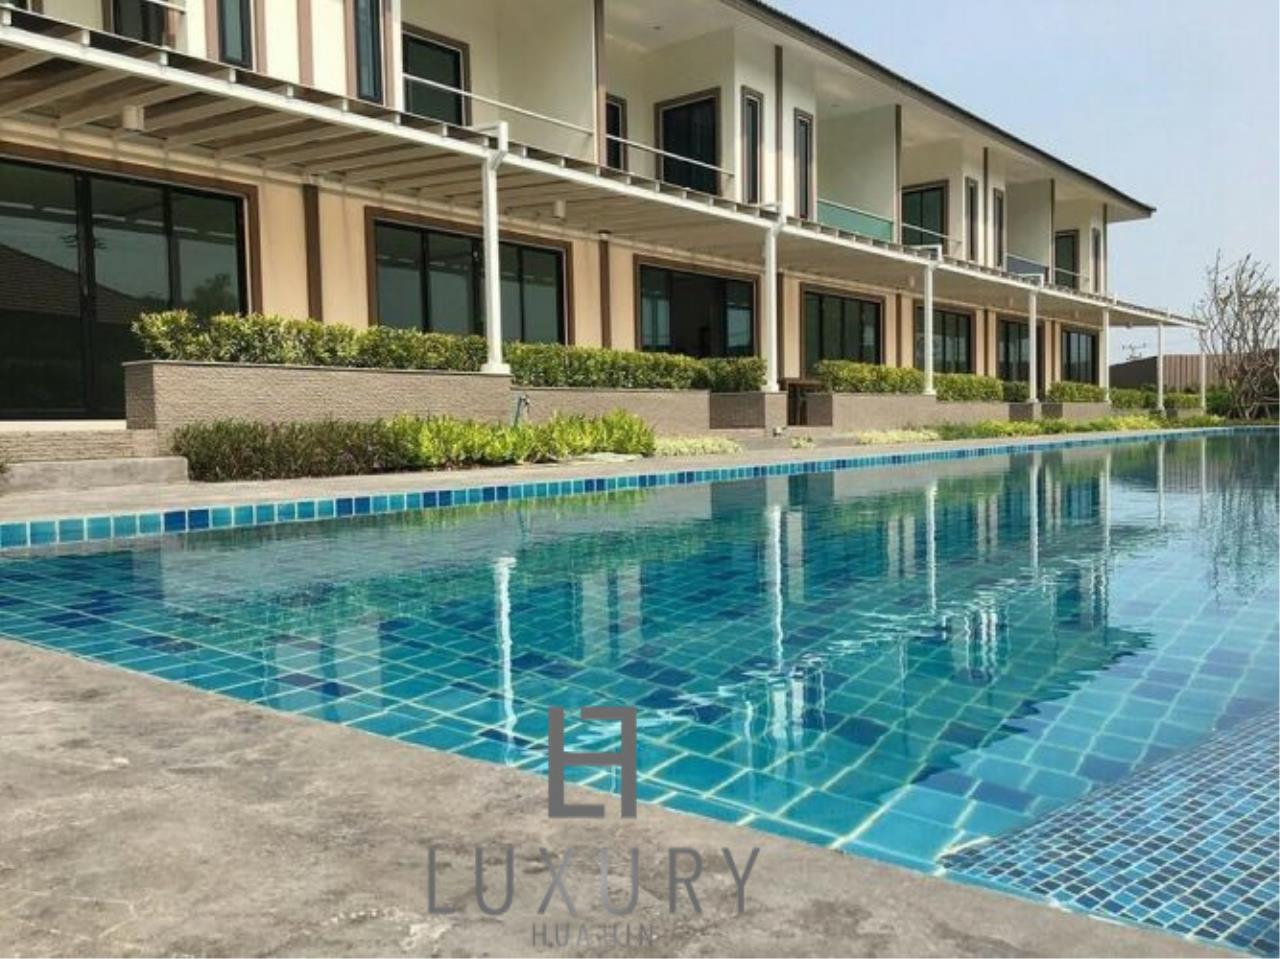 Luxury Hua Hin Property Agency's New Development - New Townhouses close to Hua Hin town centre 15